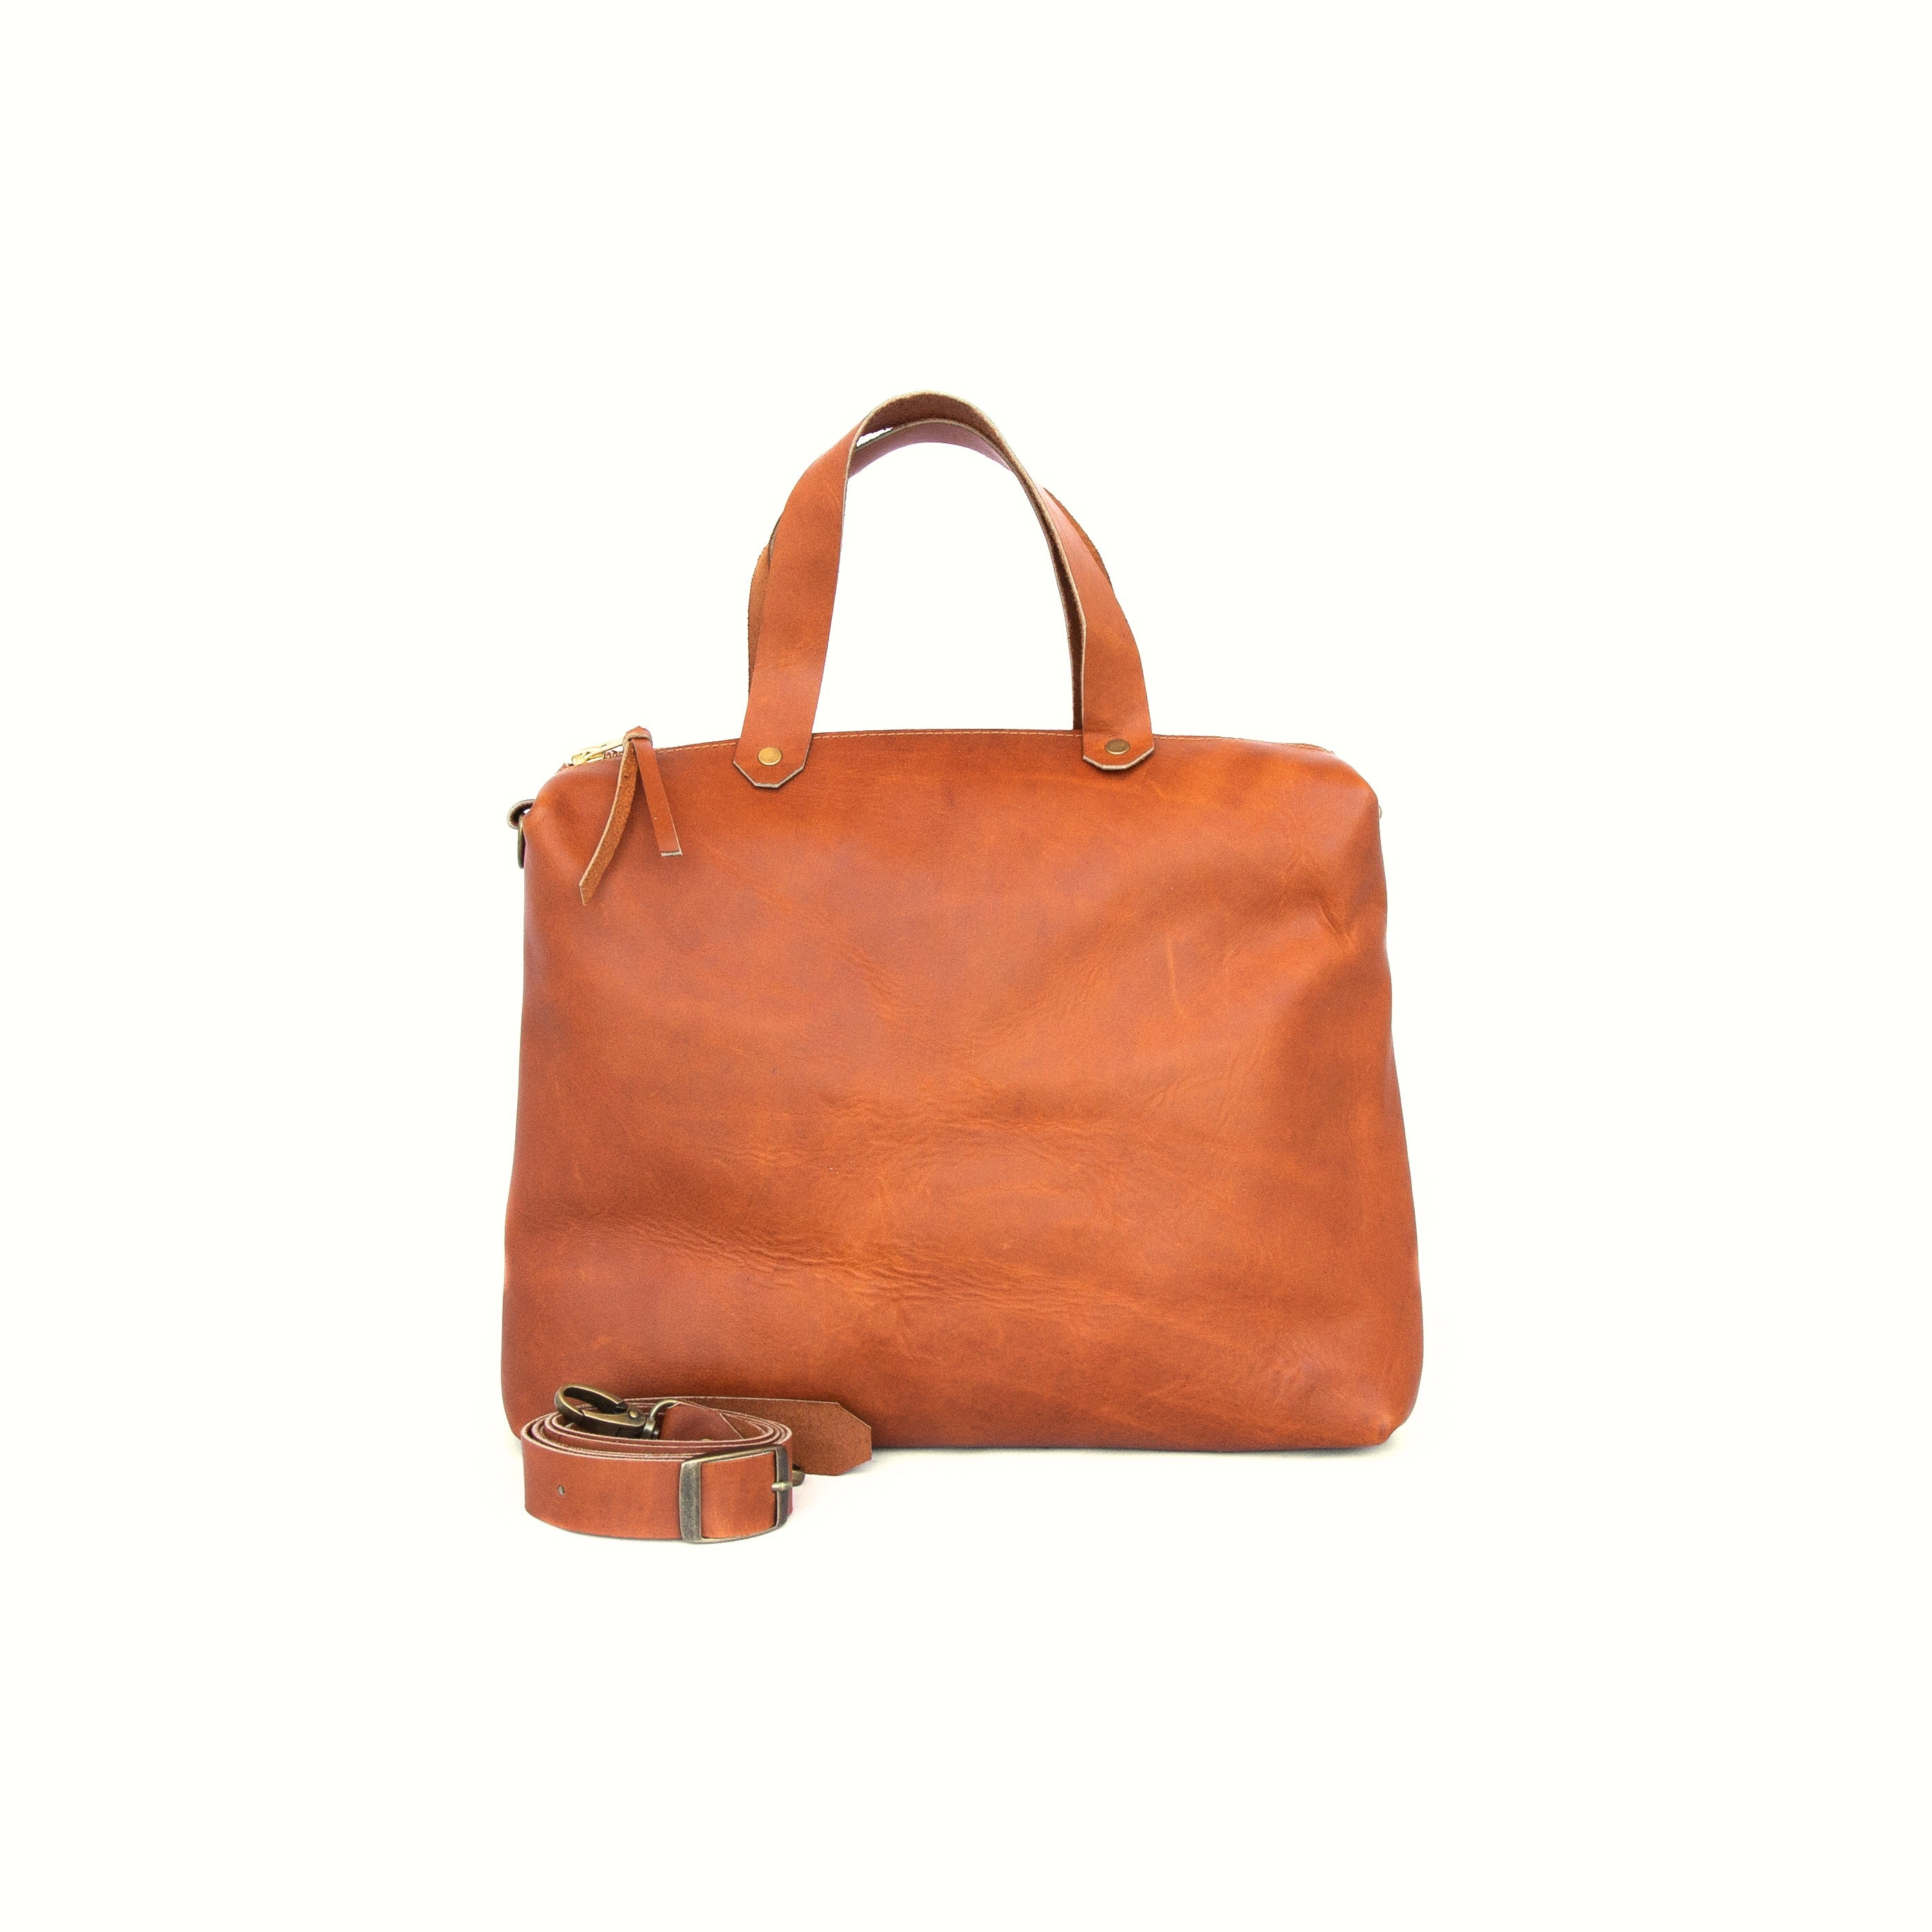 Spy Bag In Ochre Leather - handcrafted by Market Canvas Leather in Tofino, BC, Canada